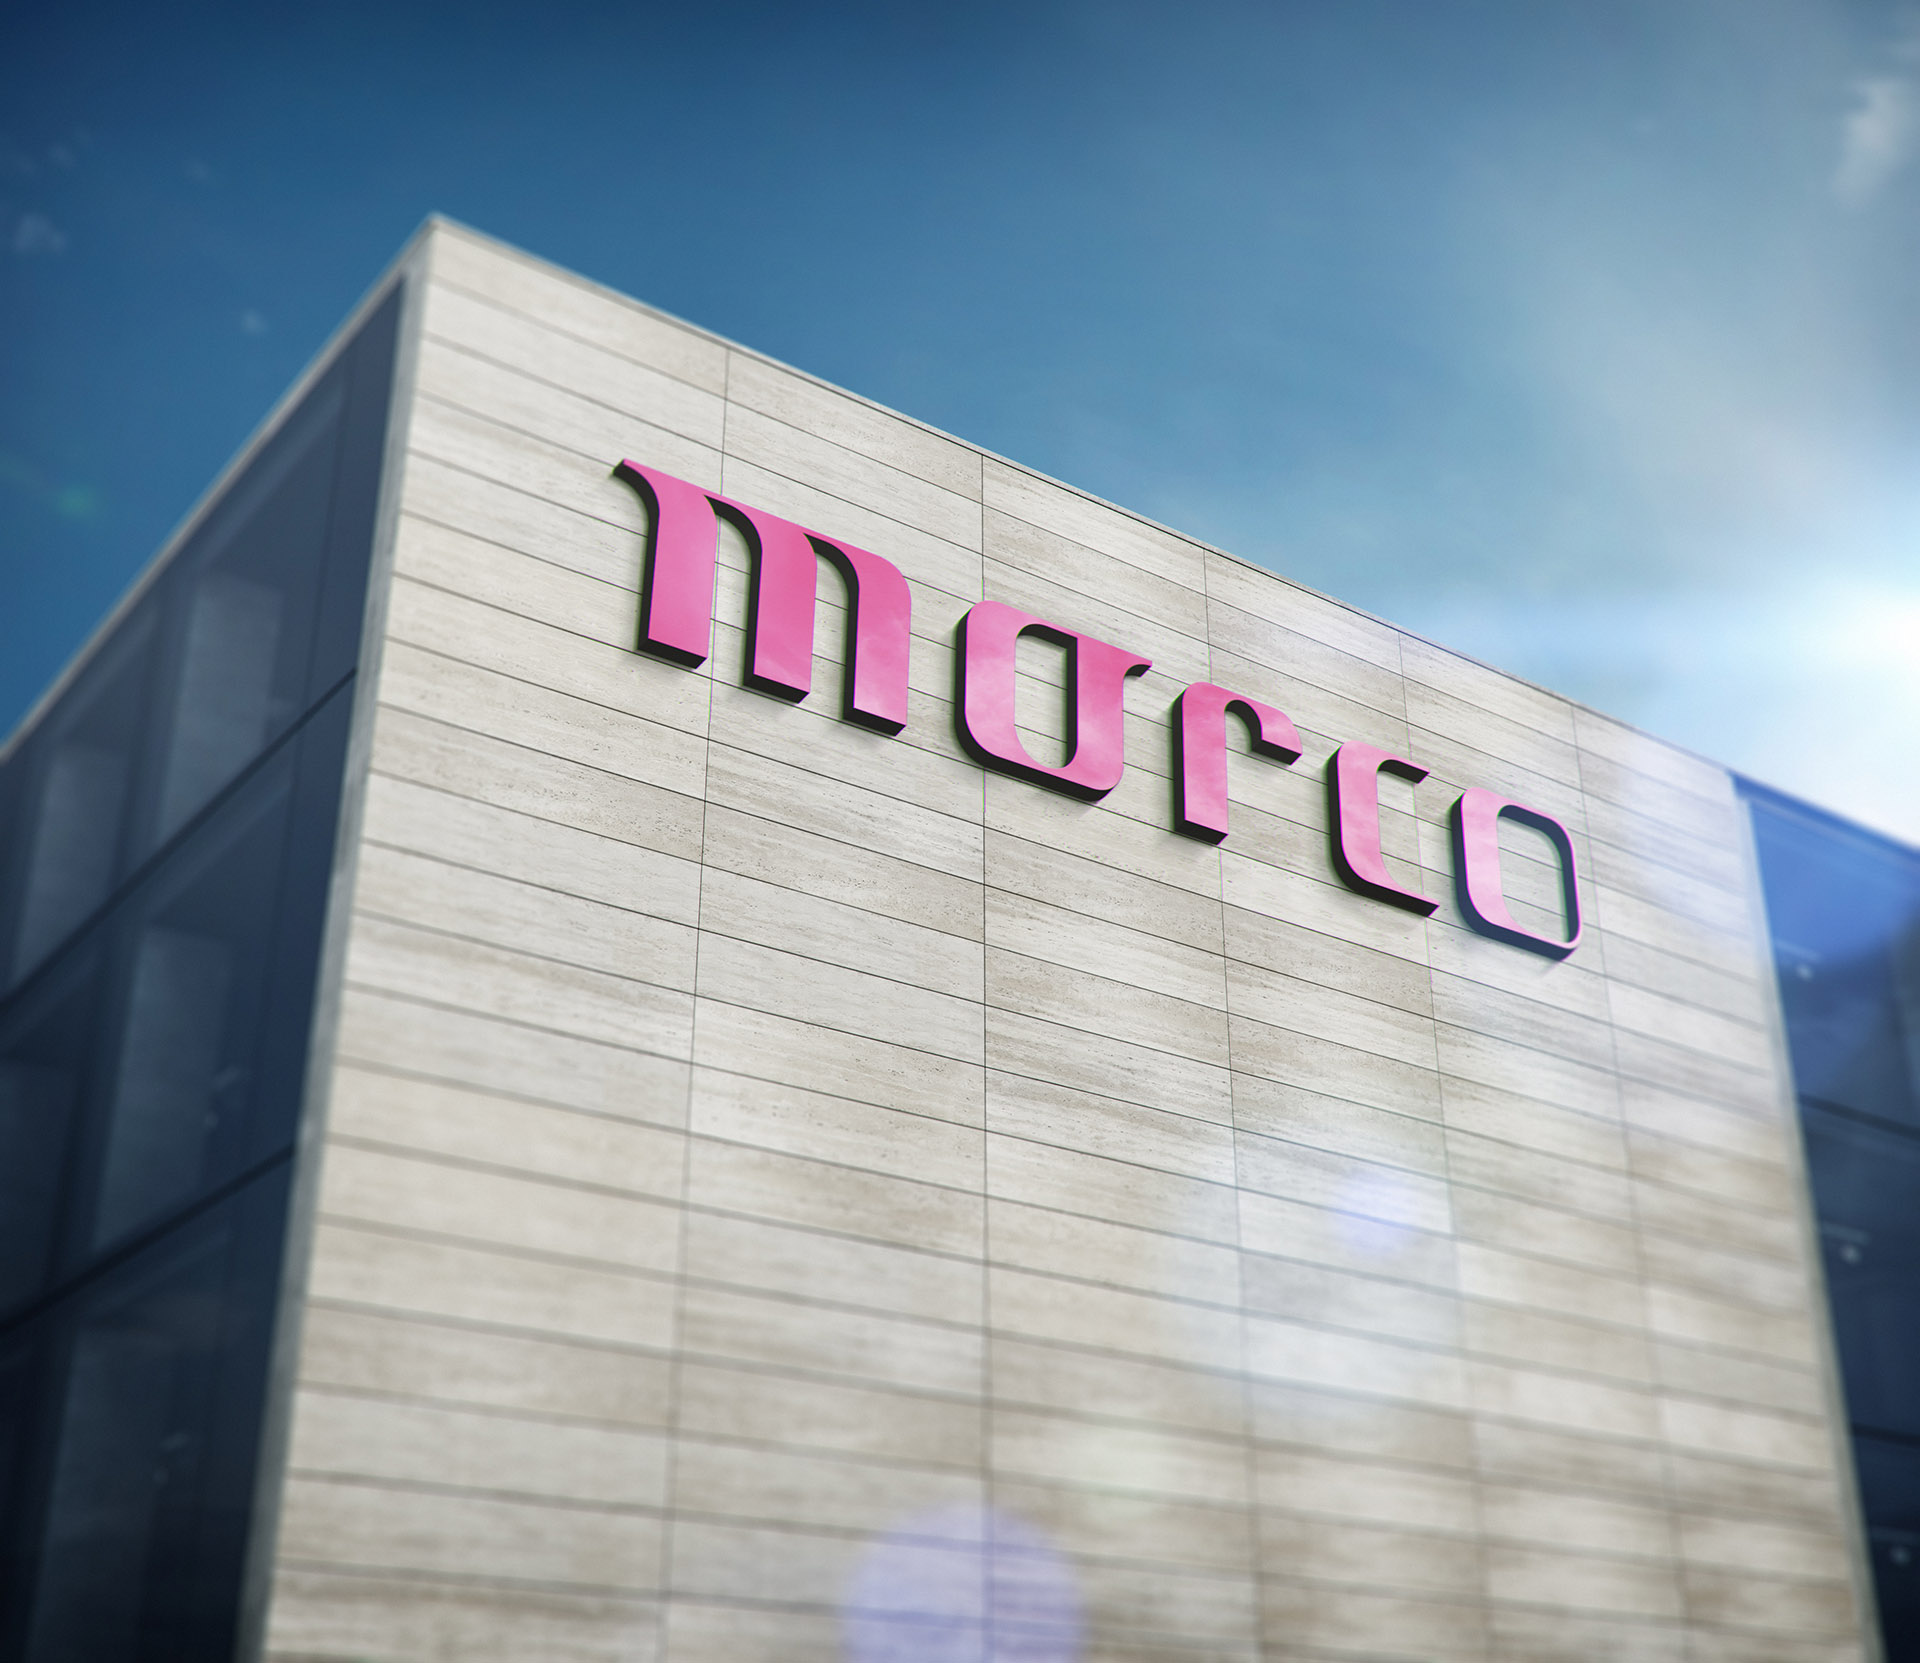 marco_sign3